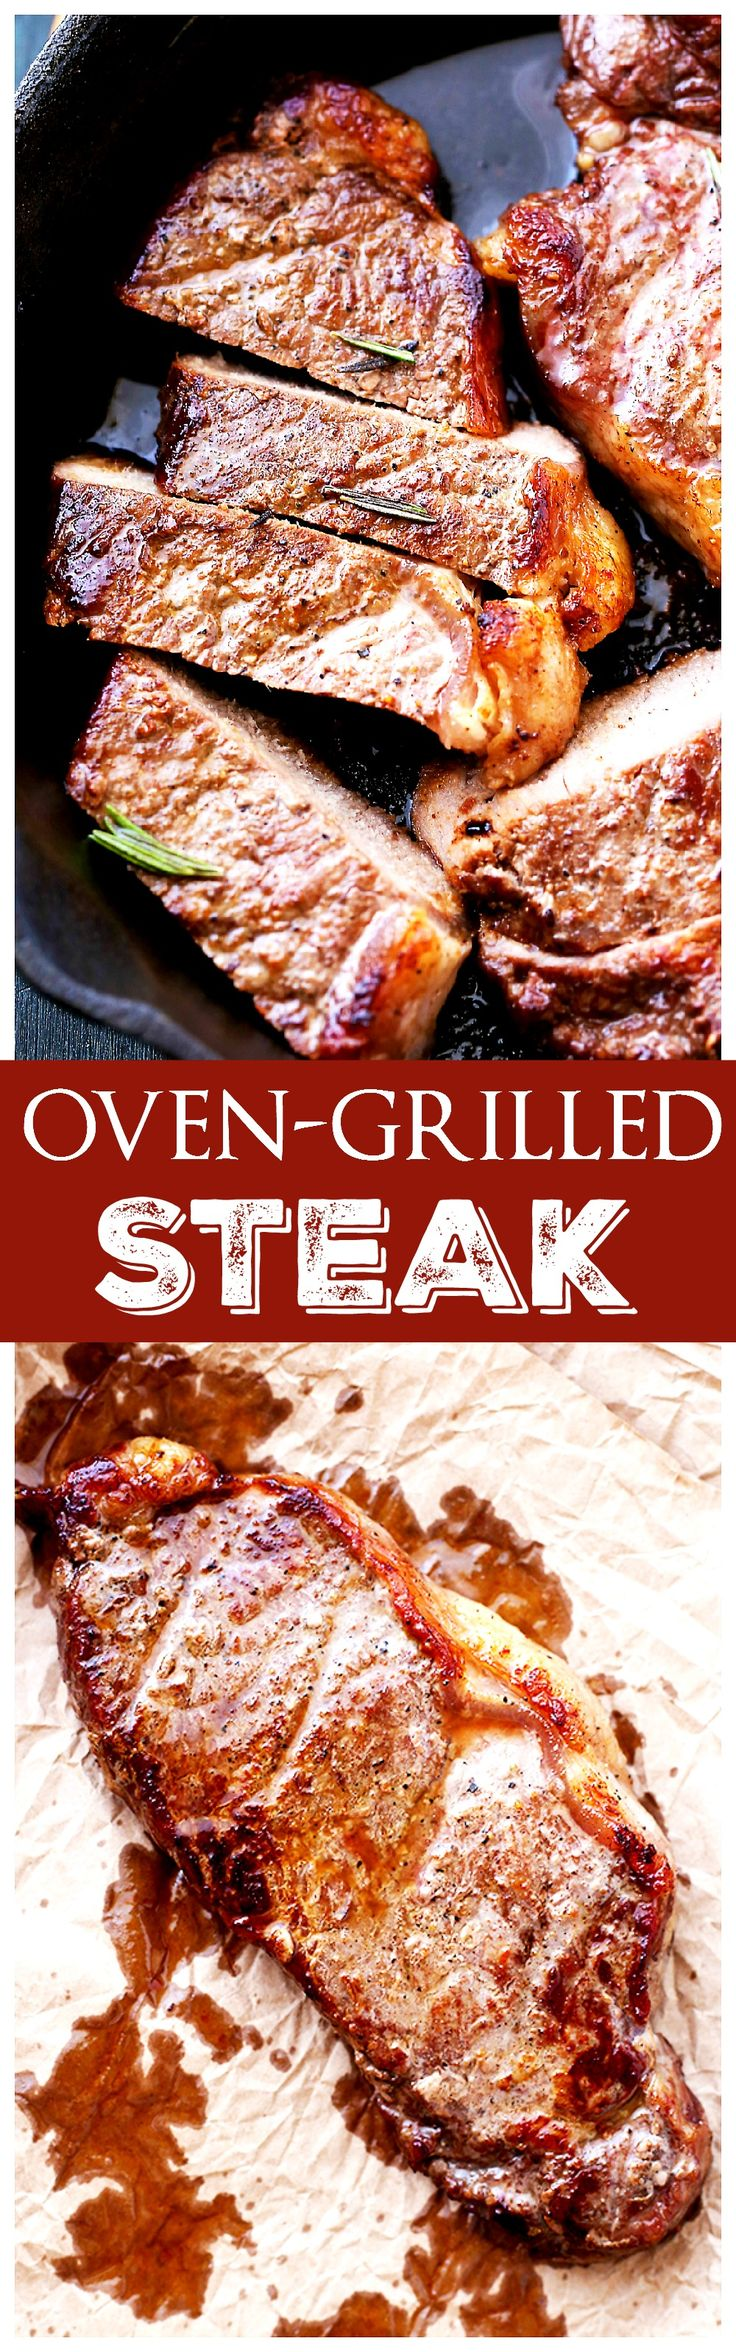 Oven Grilled Steak – Delicious, tender, and juicy thick-cut steak grilled in the oven!